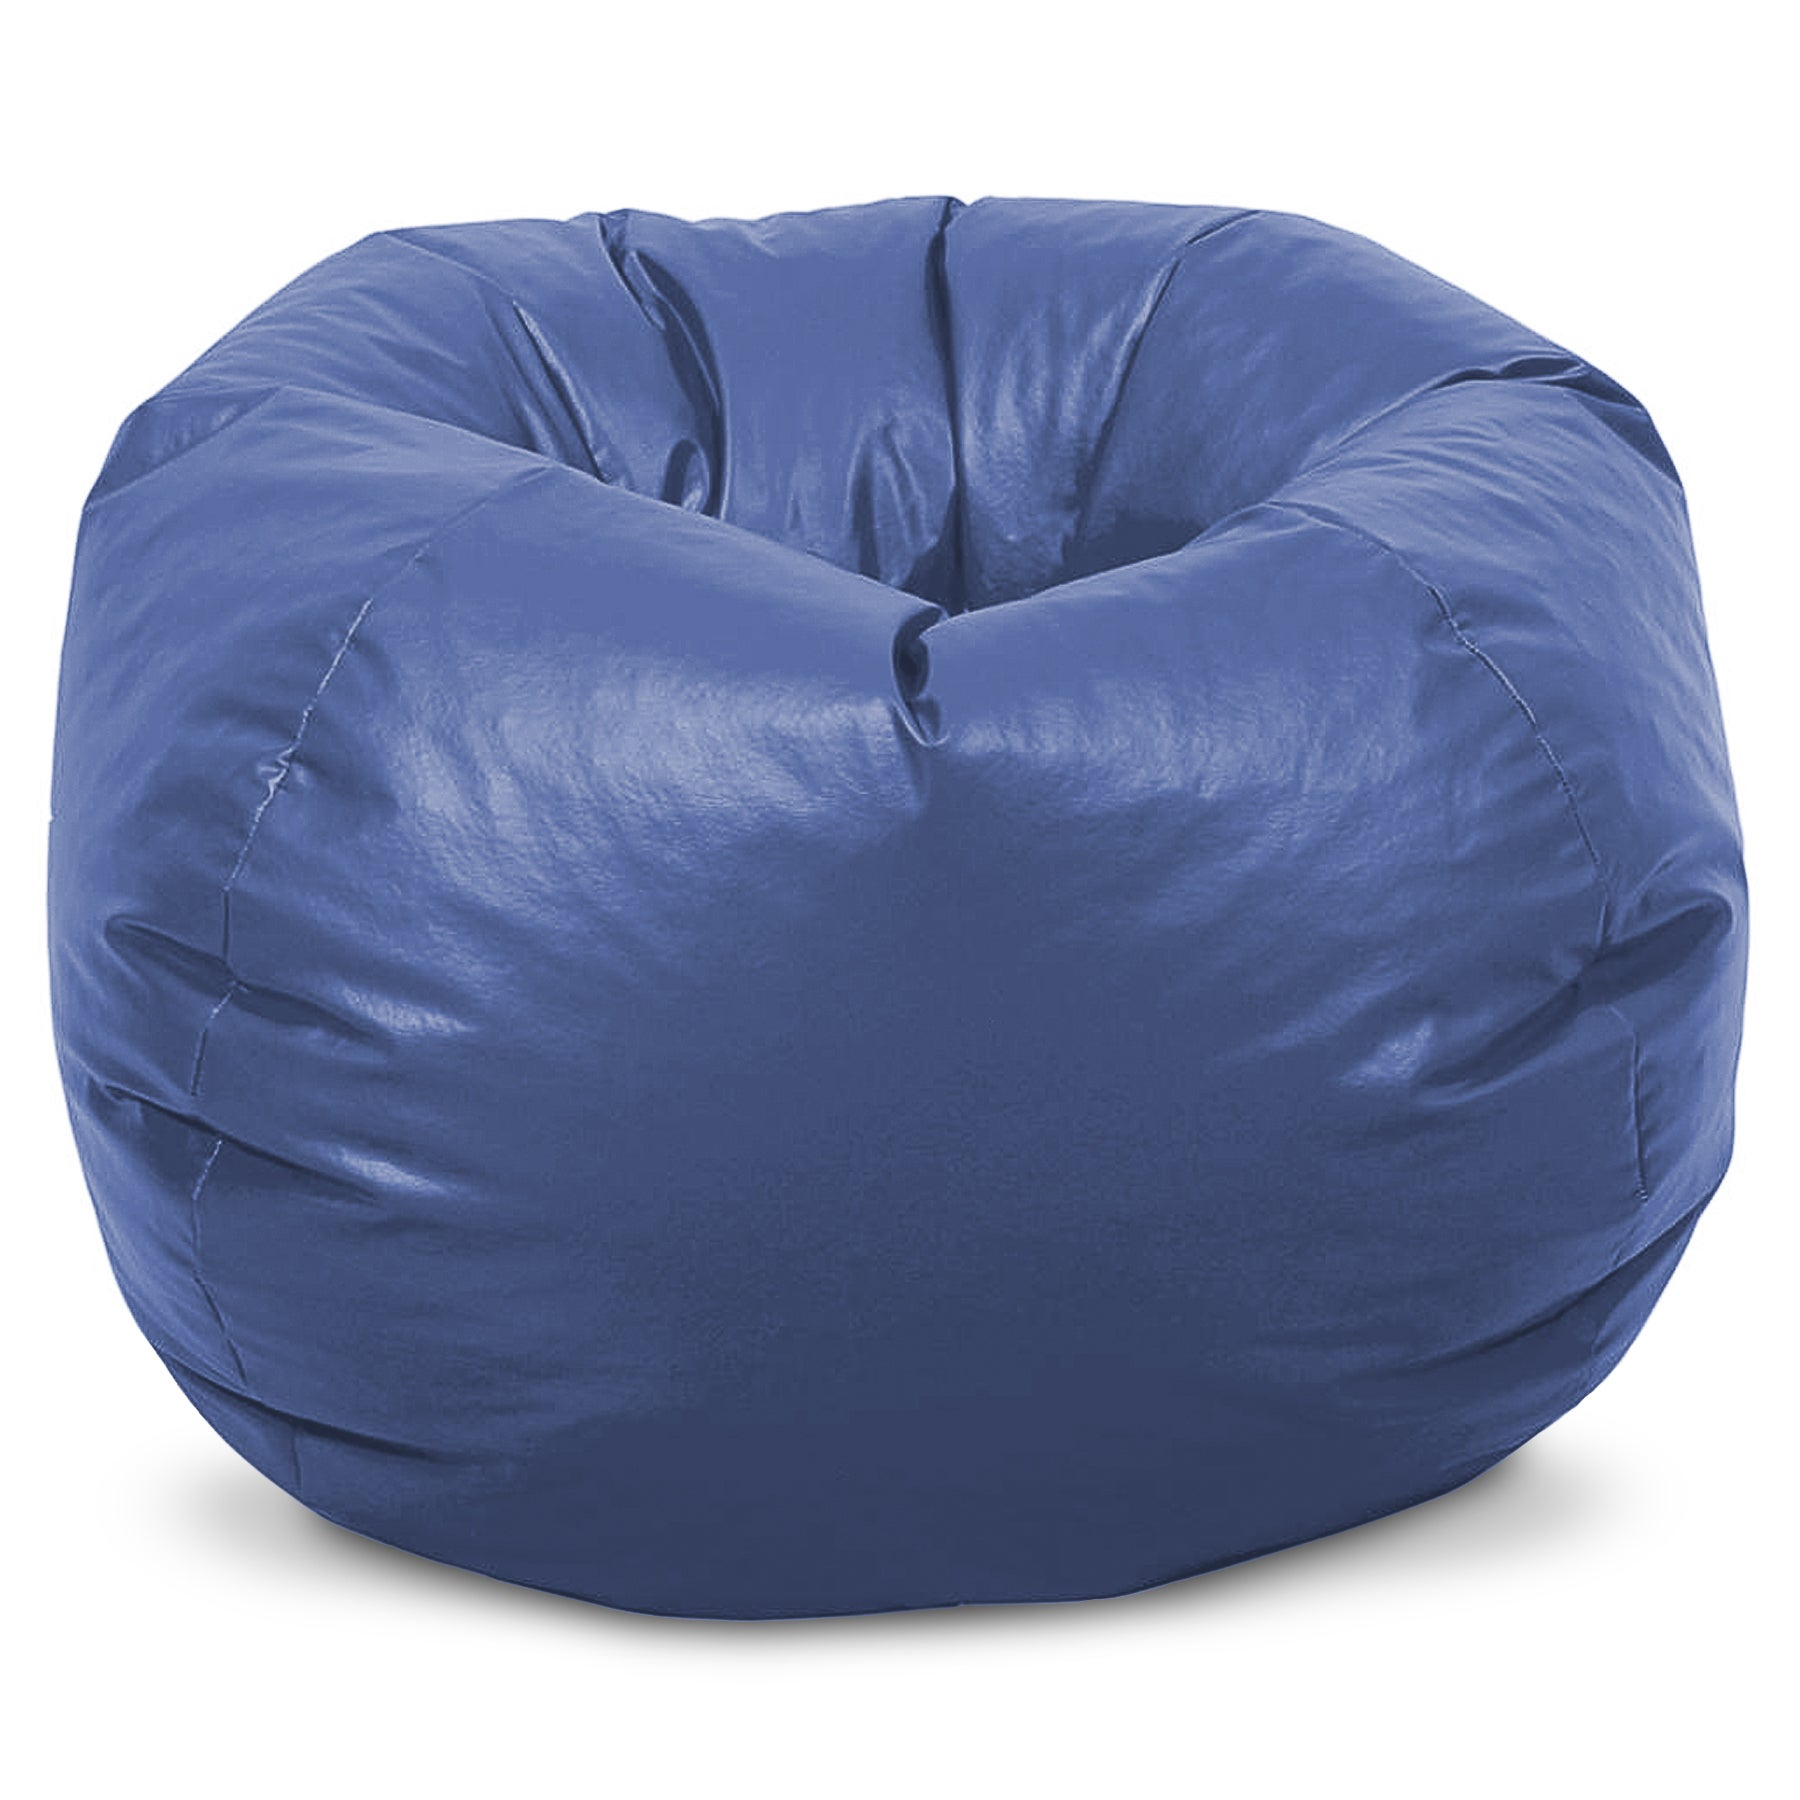 Giant Bean Bag Chairs - The Green Head